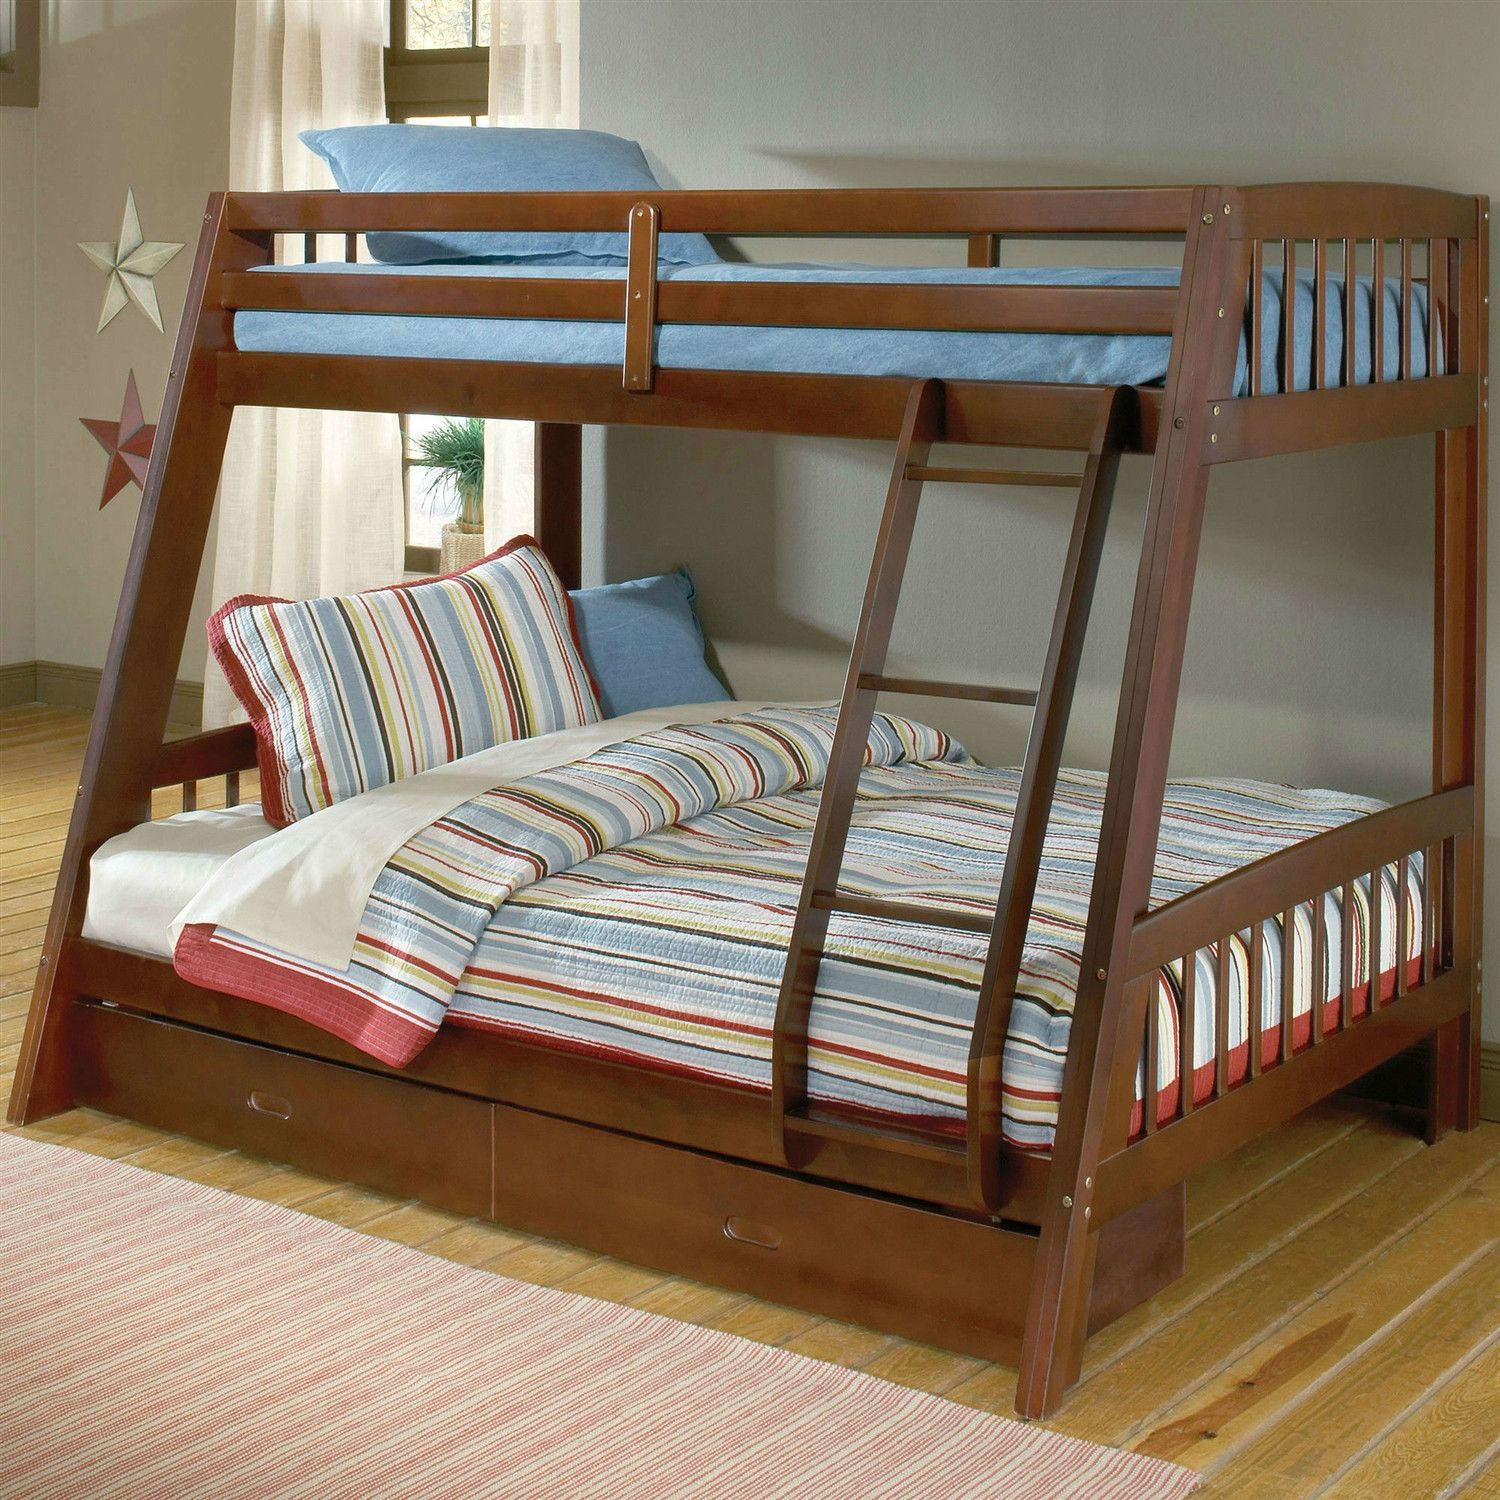 storage ridge tp bunk with buy pine and a drawers triplex beds woodcrest bed